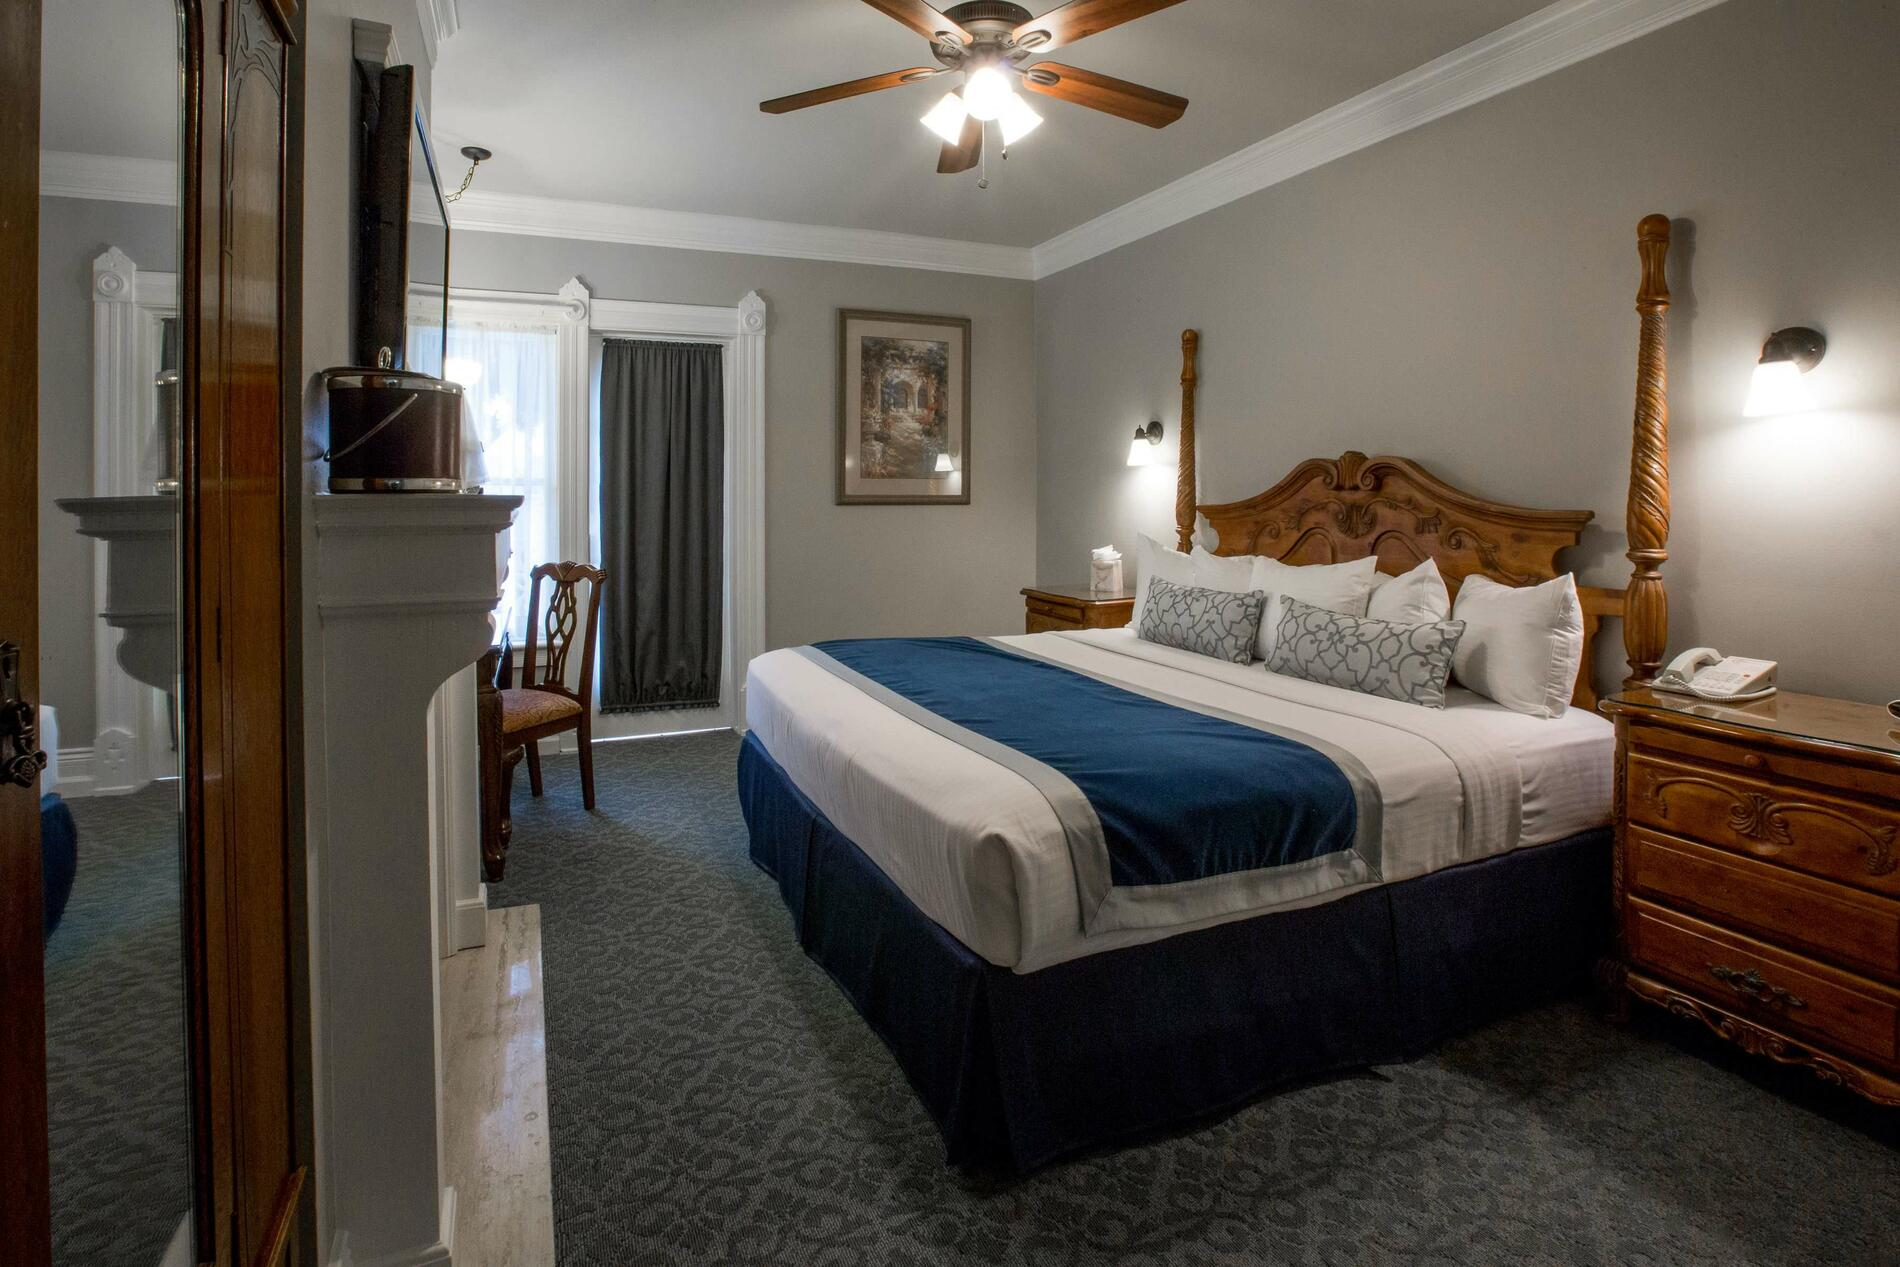 King bed and nightstand